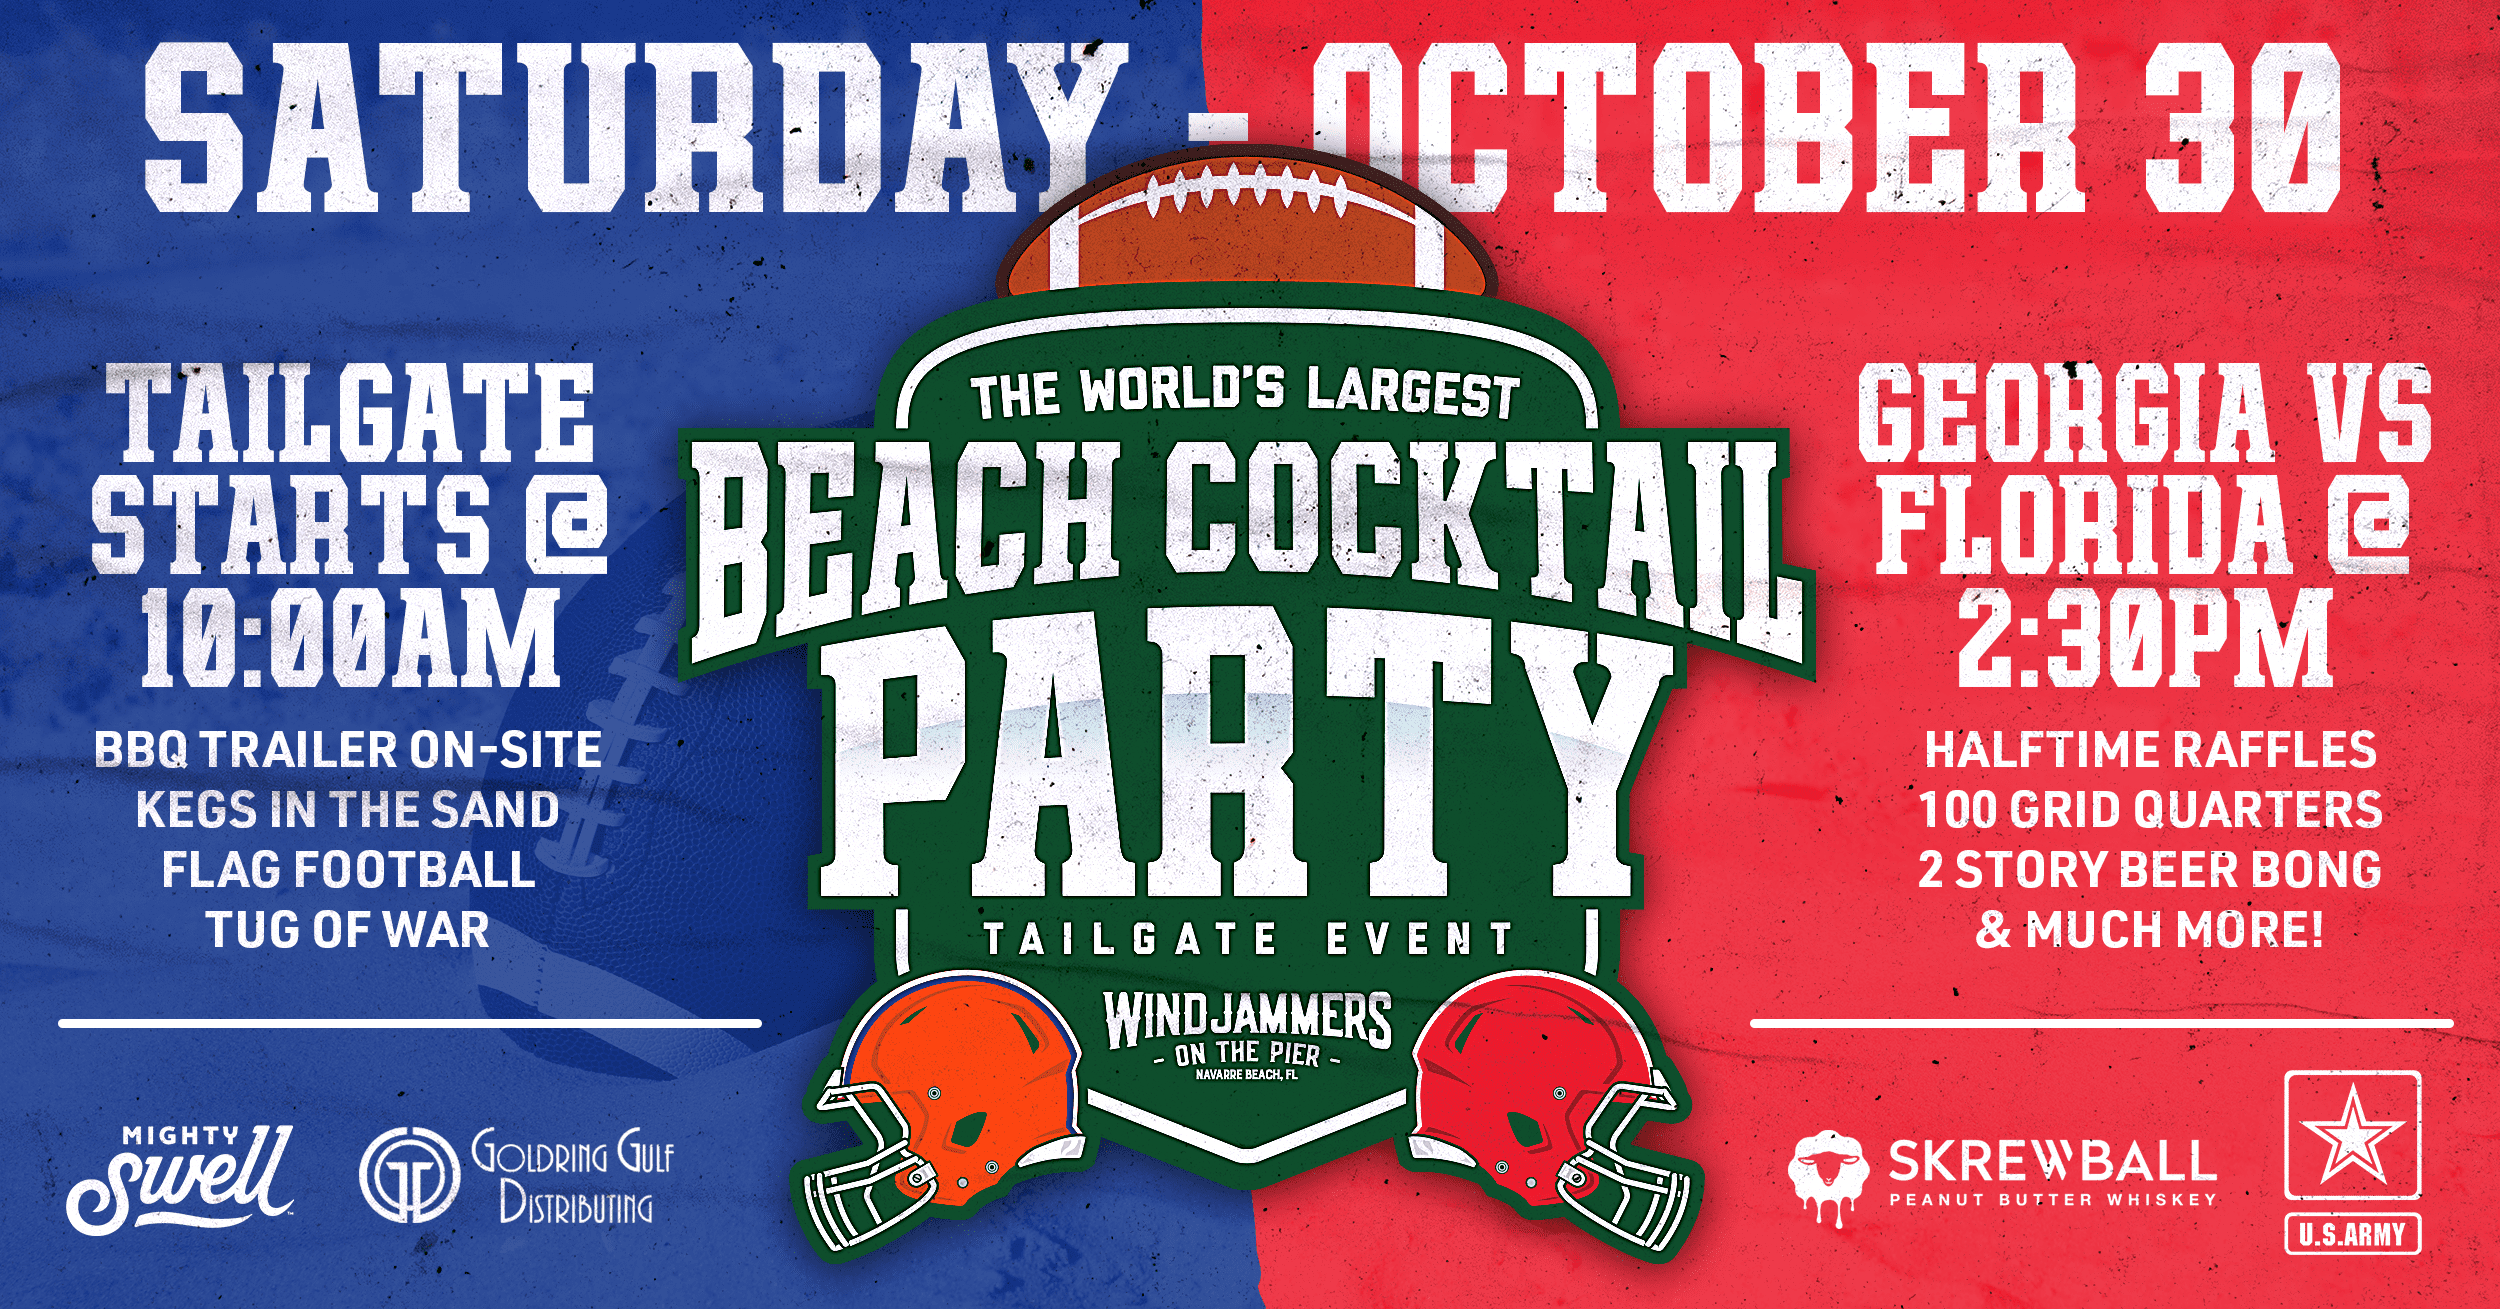 The World's Largest BEACH Cocktail Party: UGA vs UF